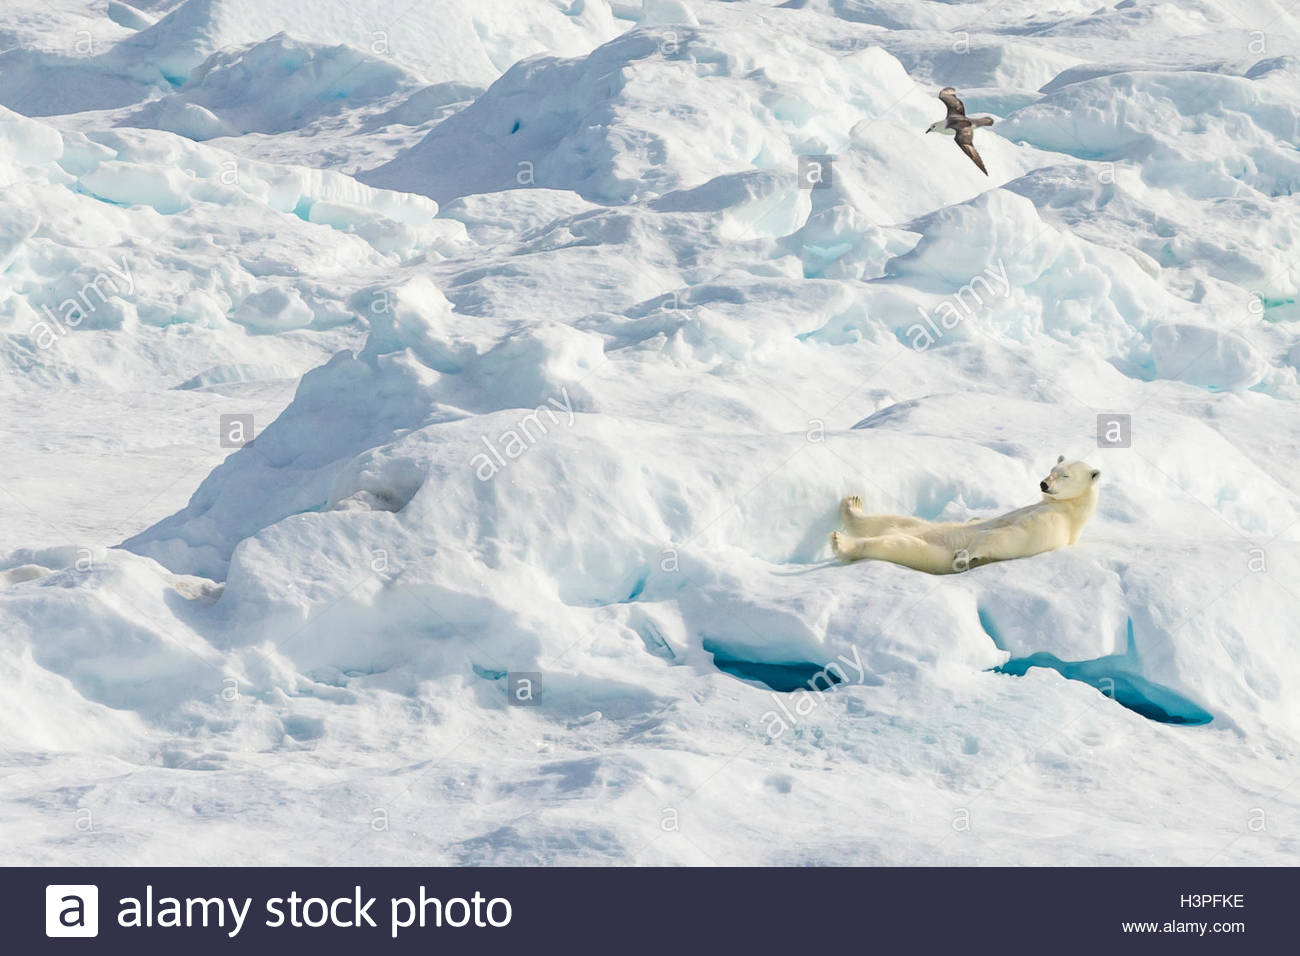 A laid back polar bear (Ursus maritimus) resting on an ice floe in the Canadian Arctic. - Stock Image